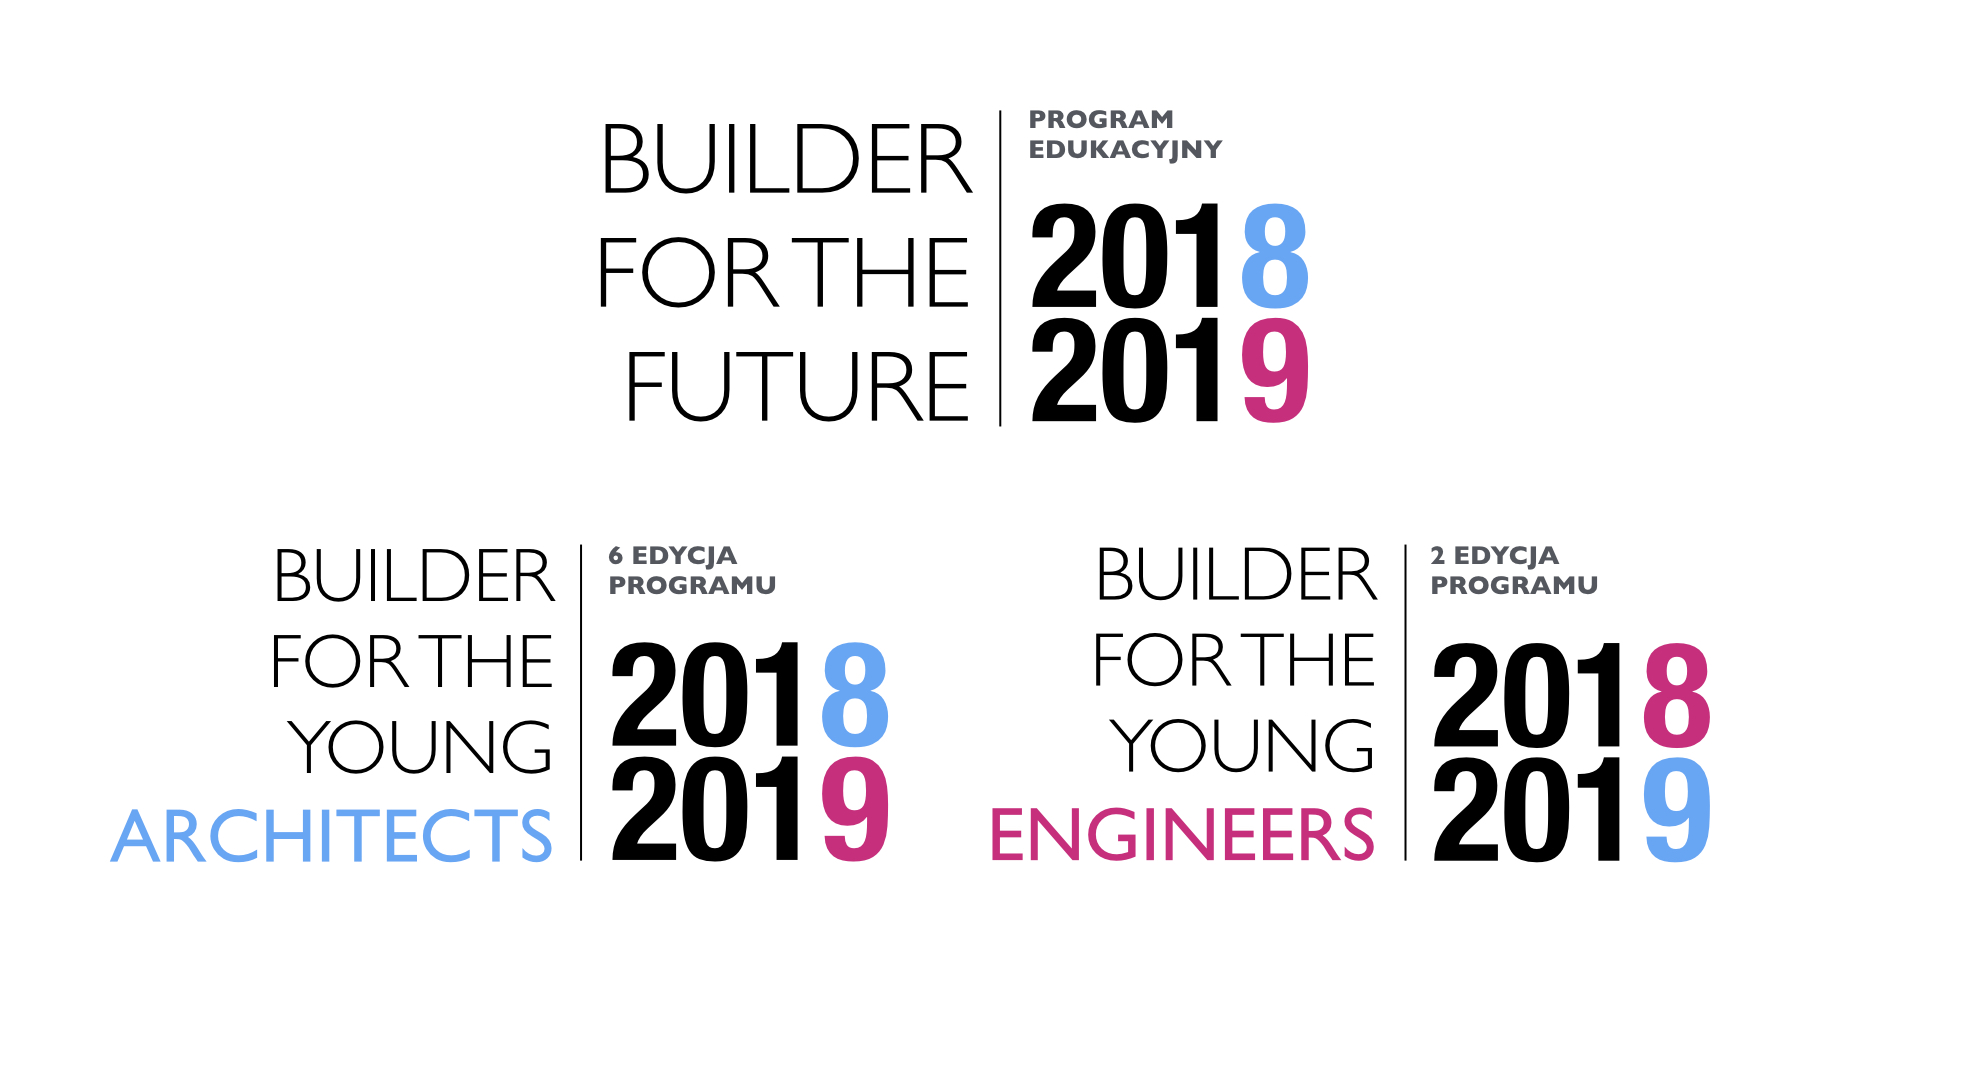 BUILDER FOR THE FUTURE 2018-2019